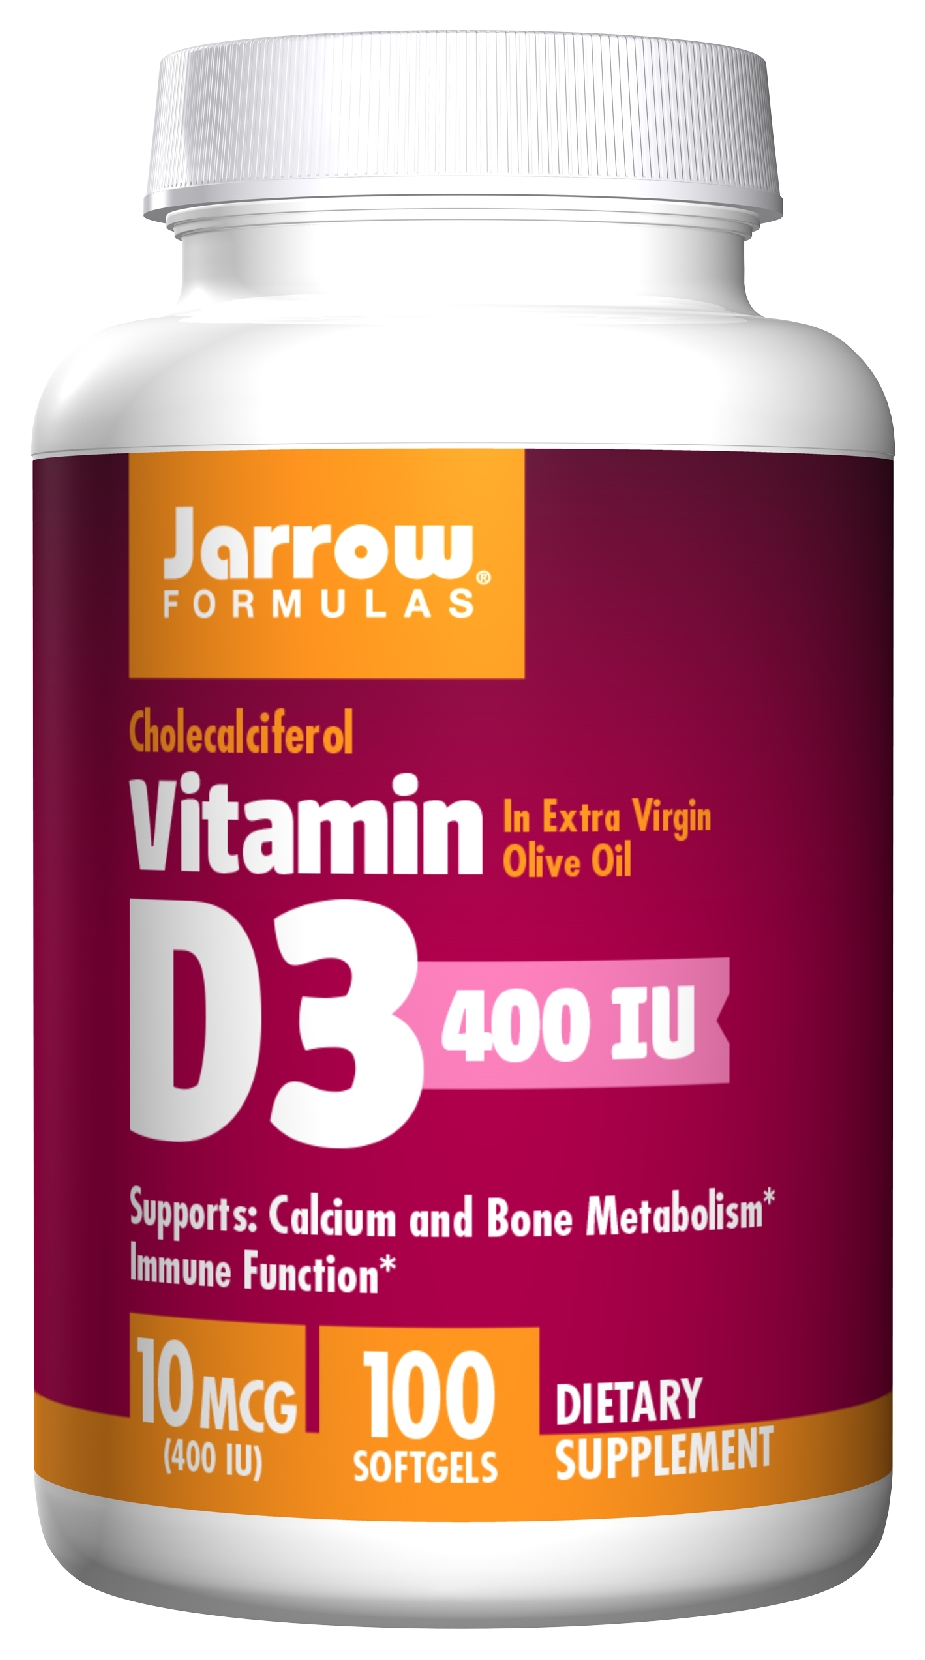 JARROW Formulas Vitamin D3 10 mcg (400 IU) 100 Softgels